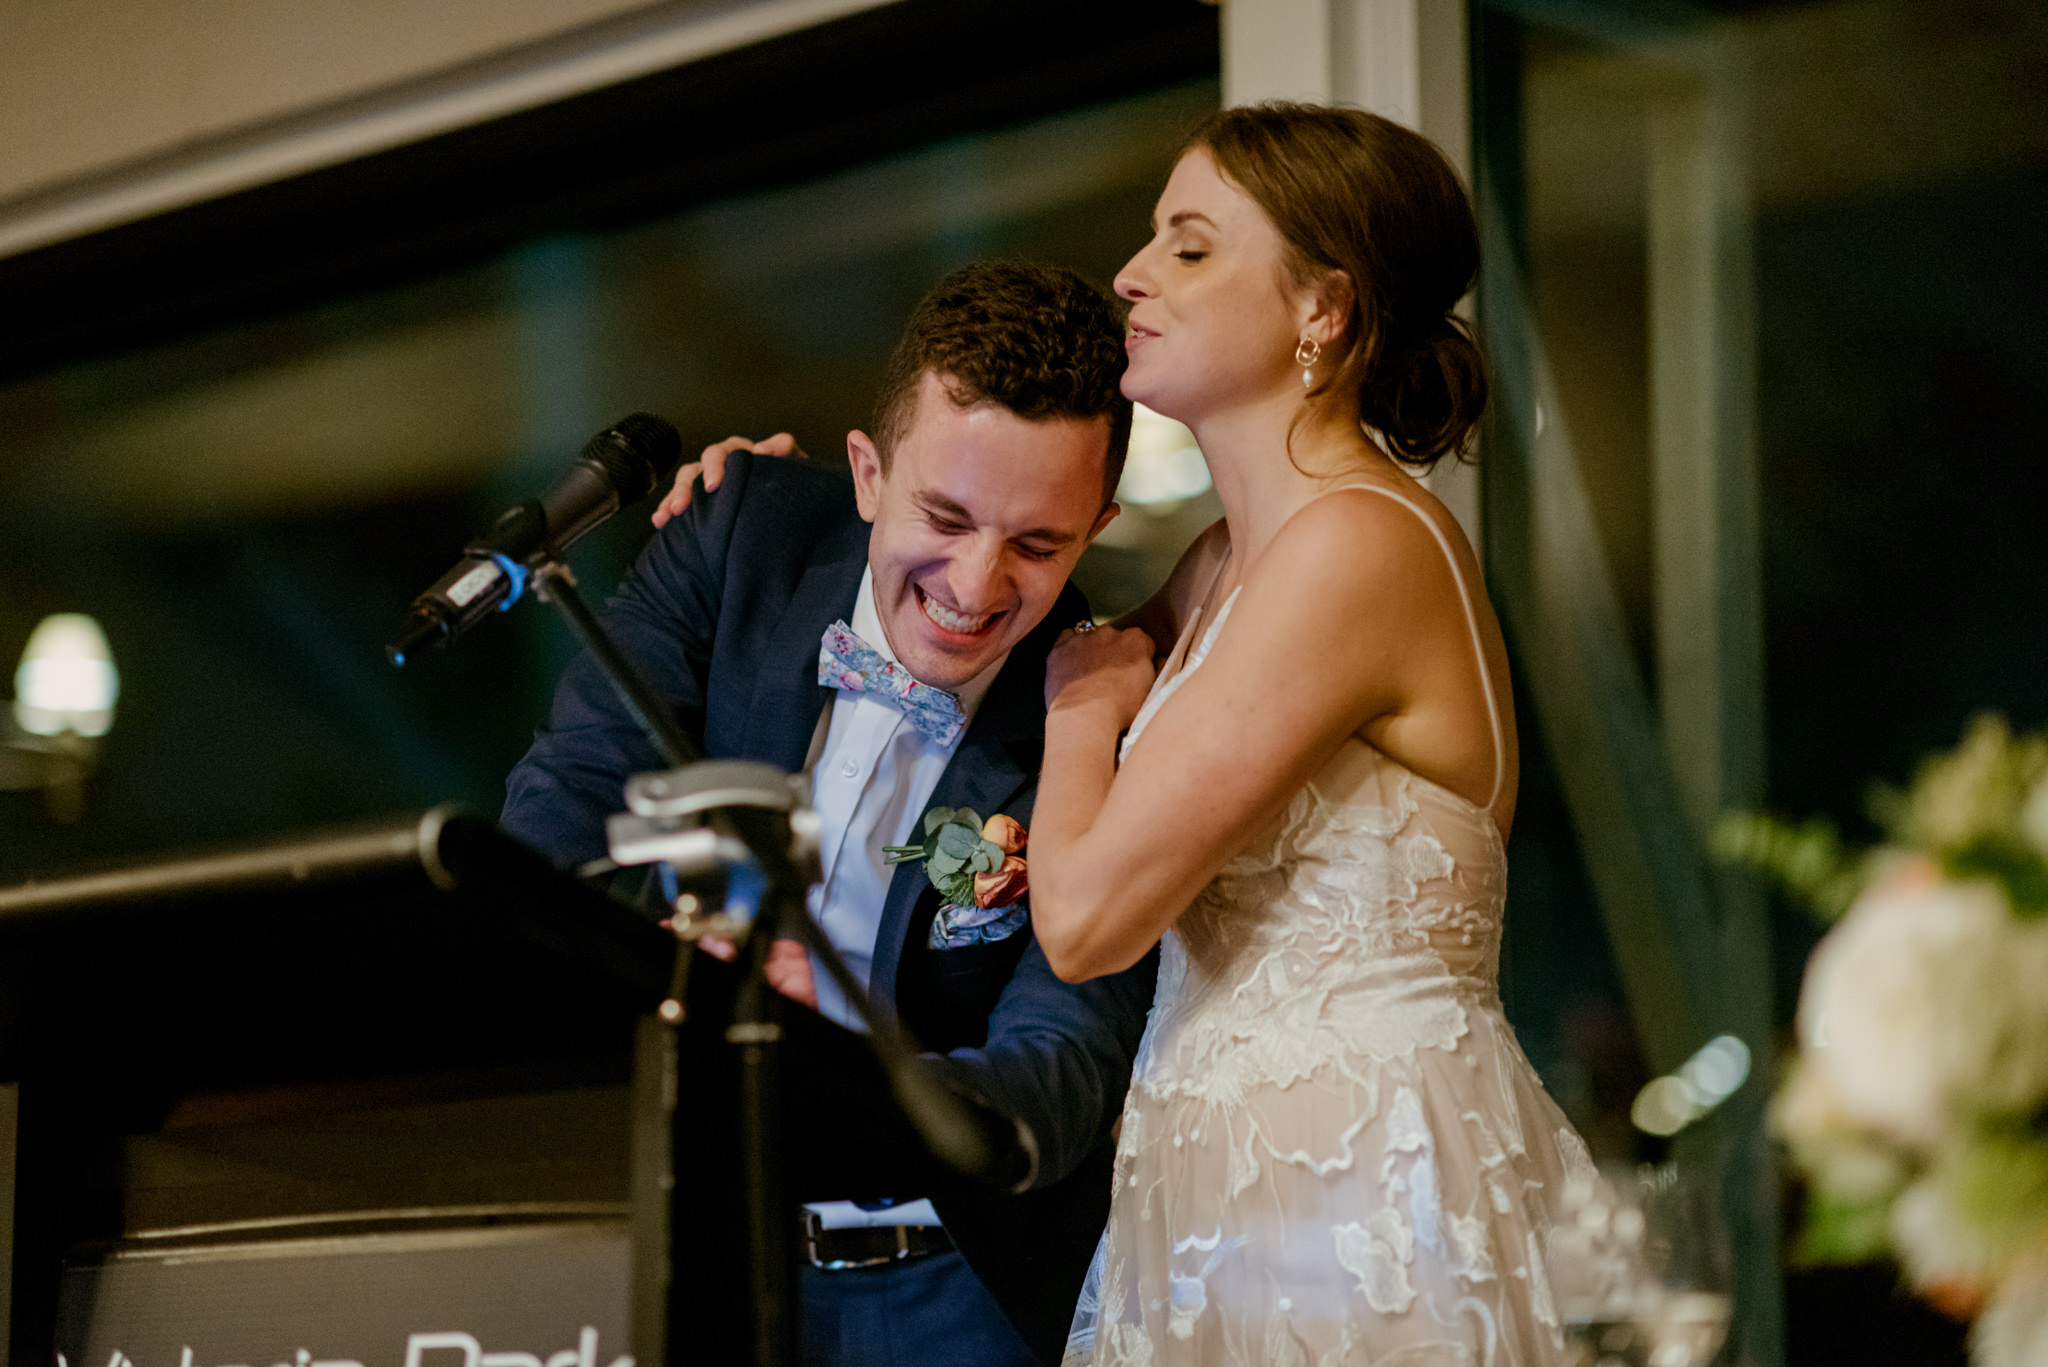 Groom laughing and crying while delivering wedding speech being comforted